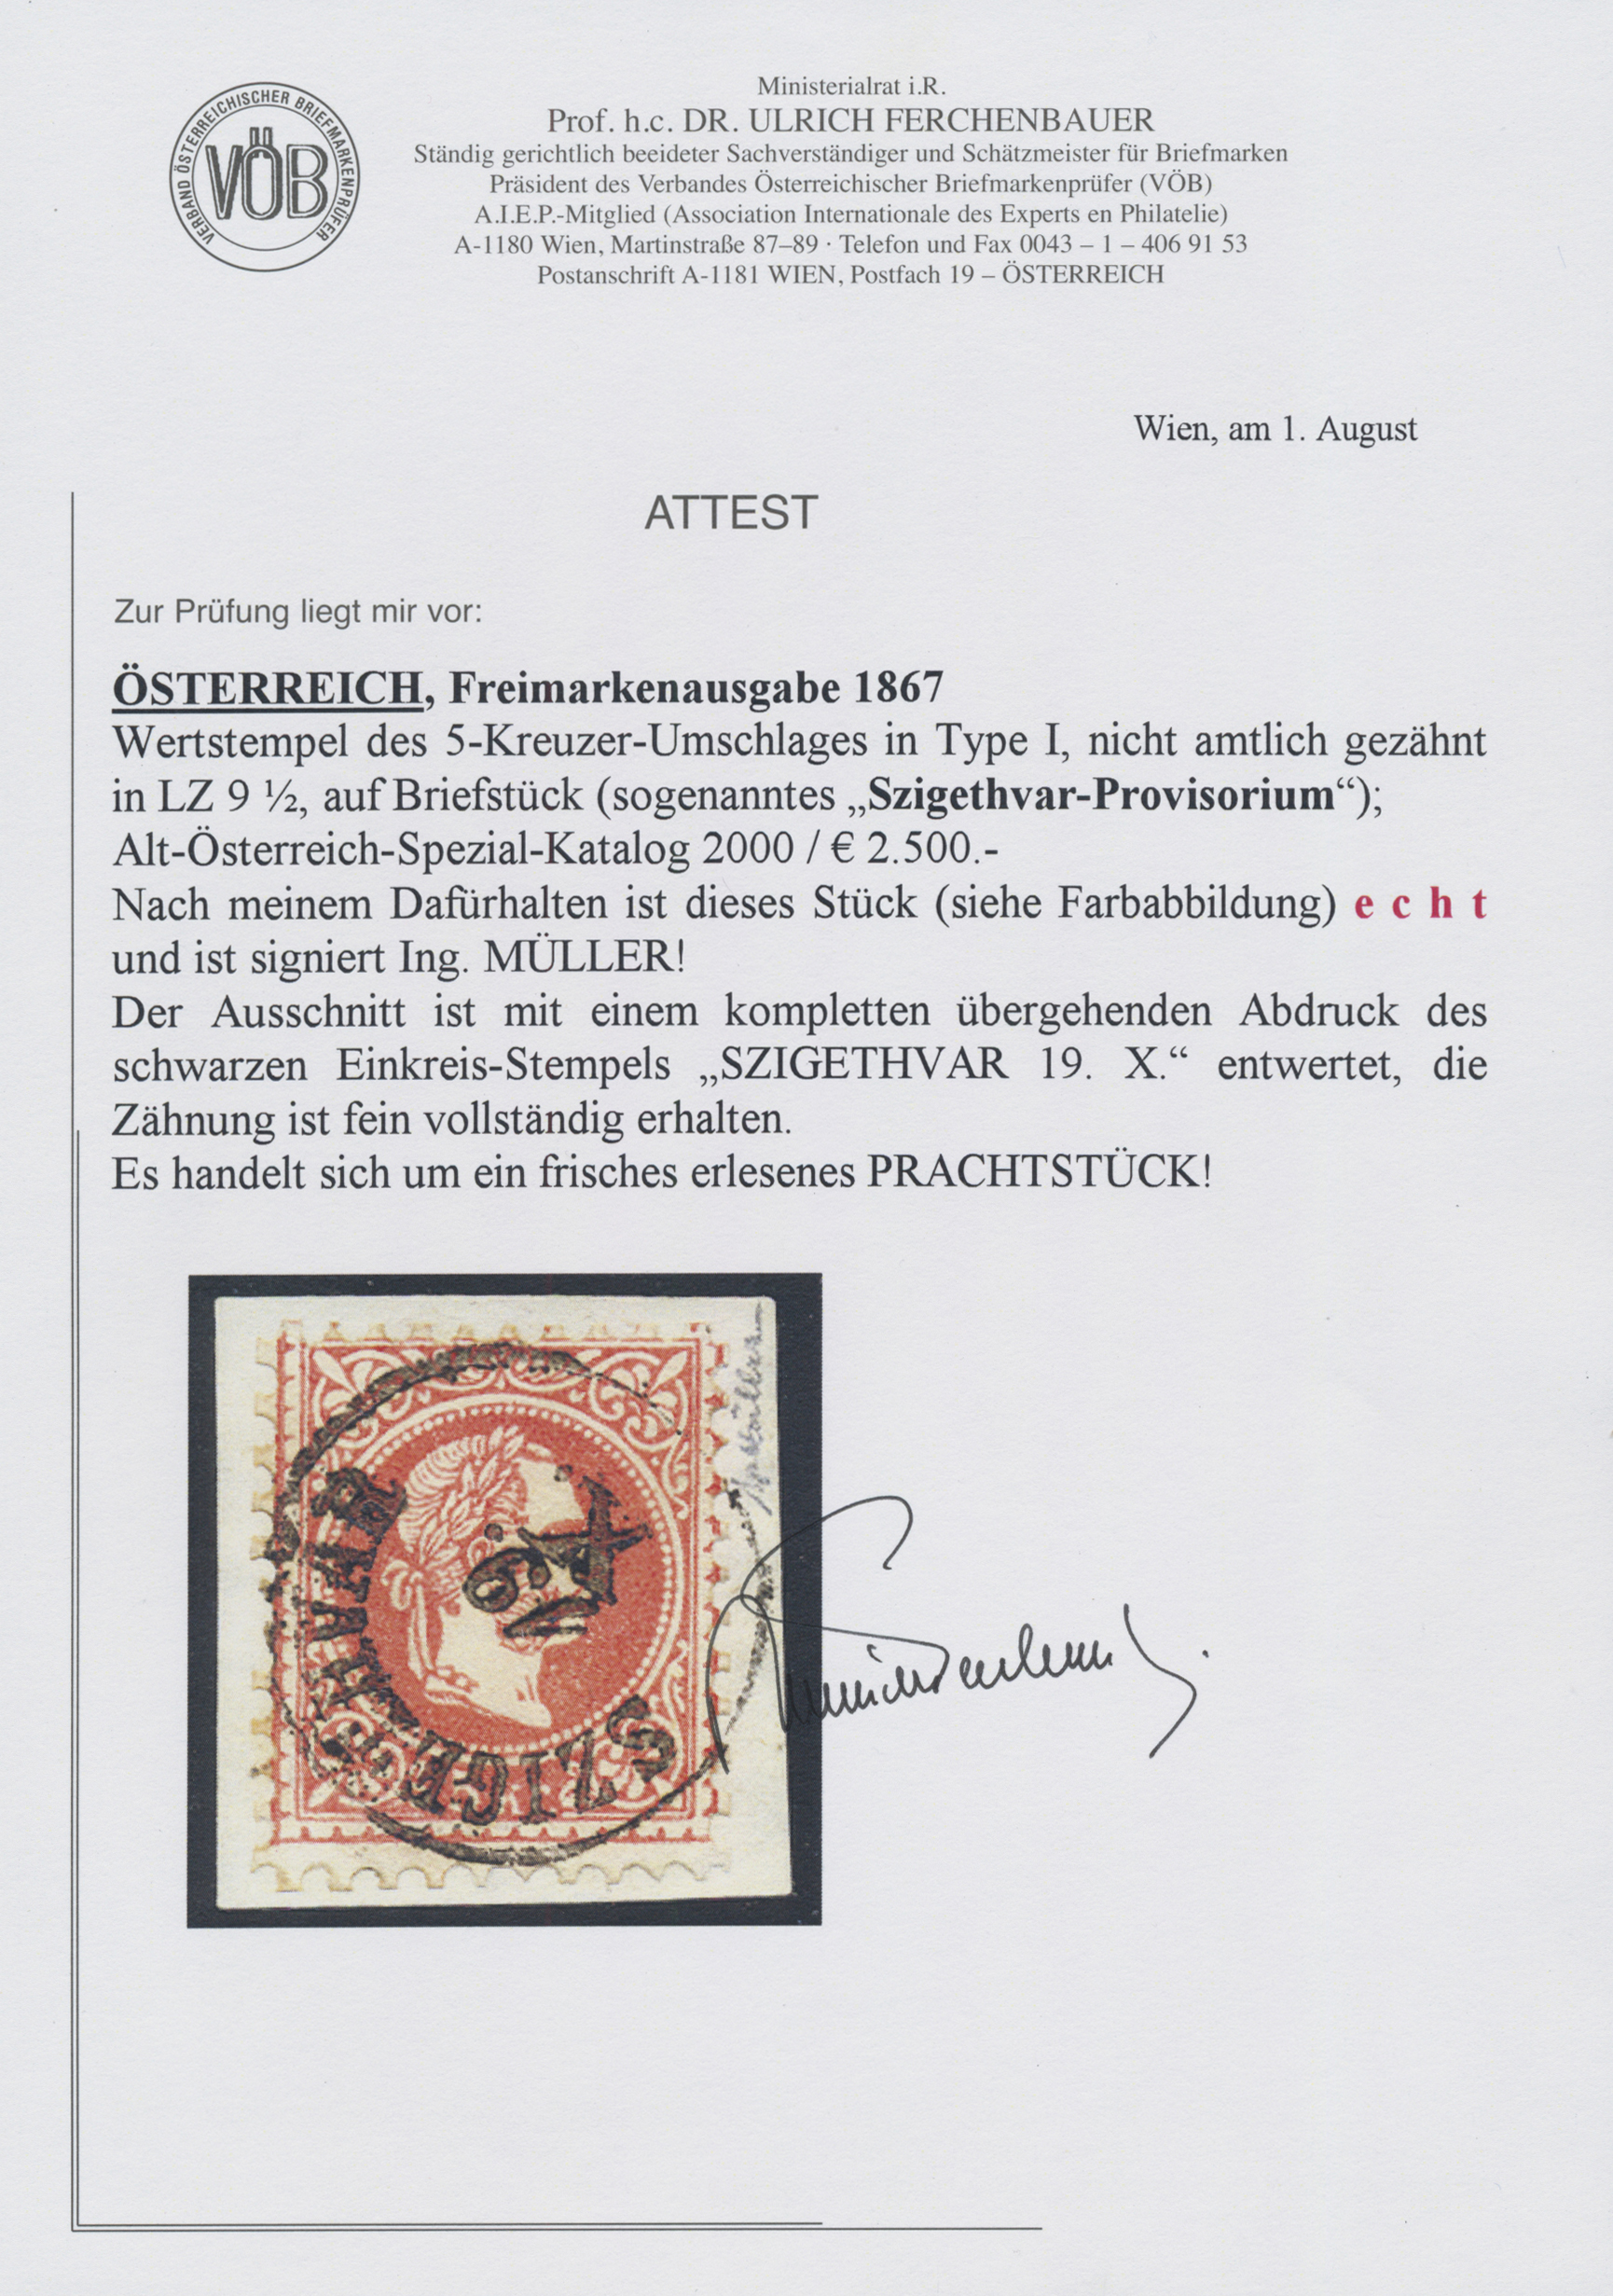 Lot 00016 - österreich  -  Auktionshaus Christoph Gärtner GmbH & Co. KG Intenational Rarities and contains lots from the collection of Peter Zgonc